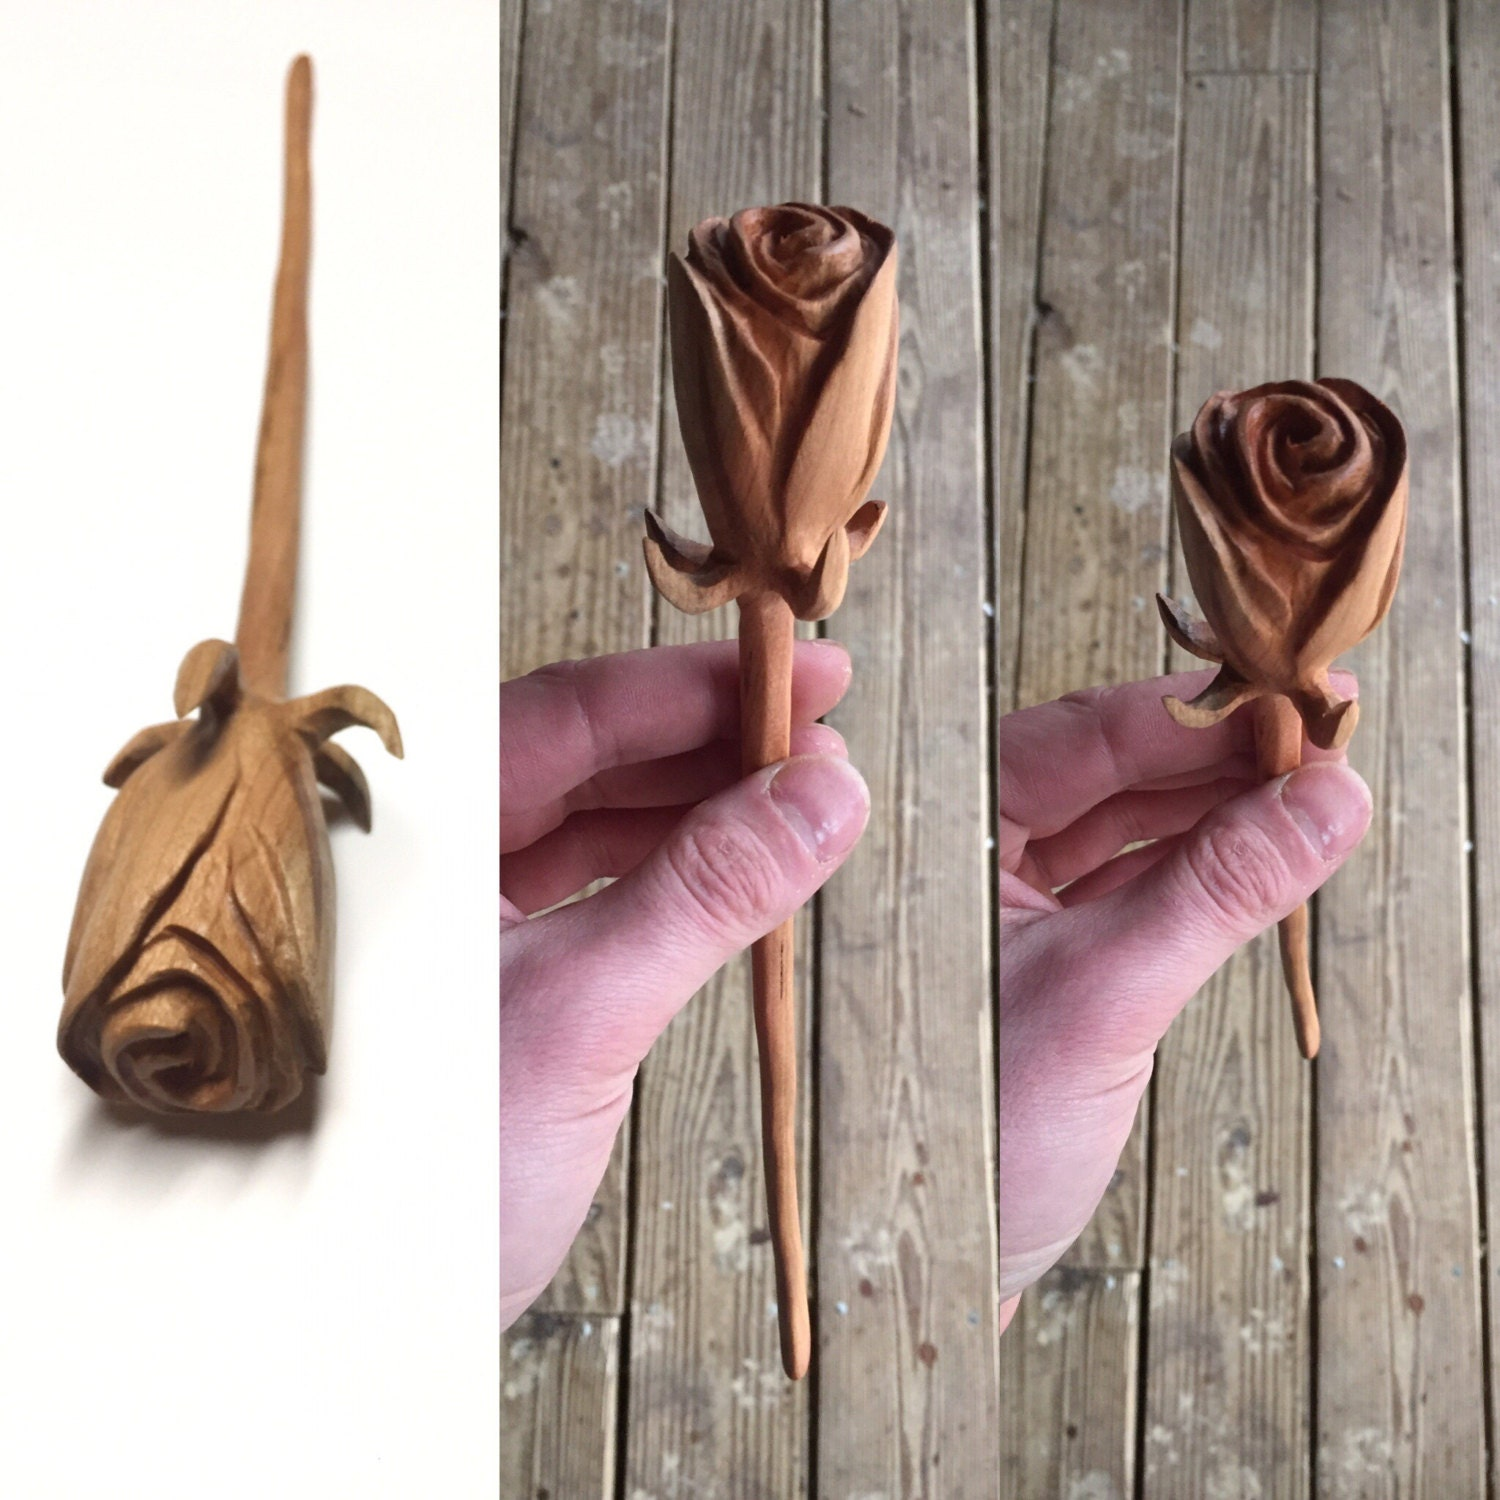 Rose wood carving valentine s day gift for her mother